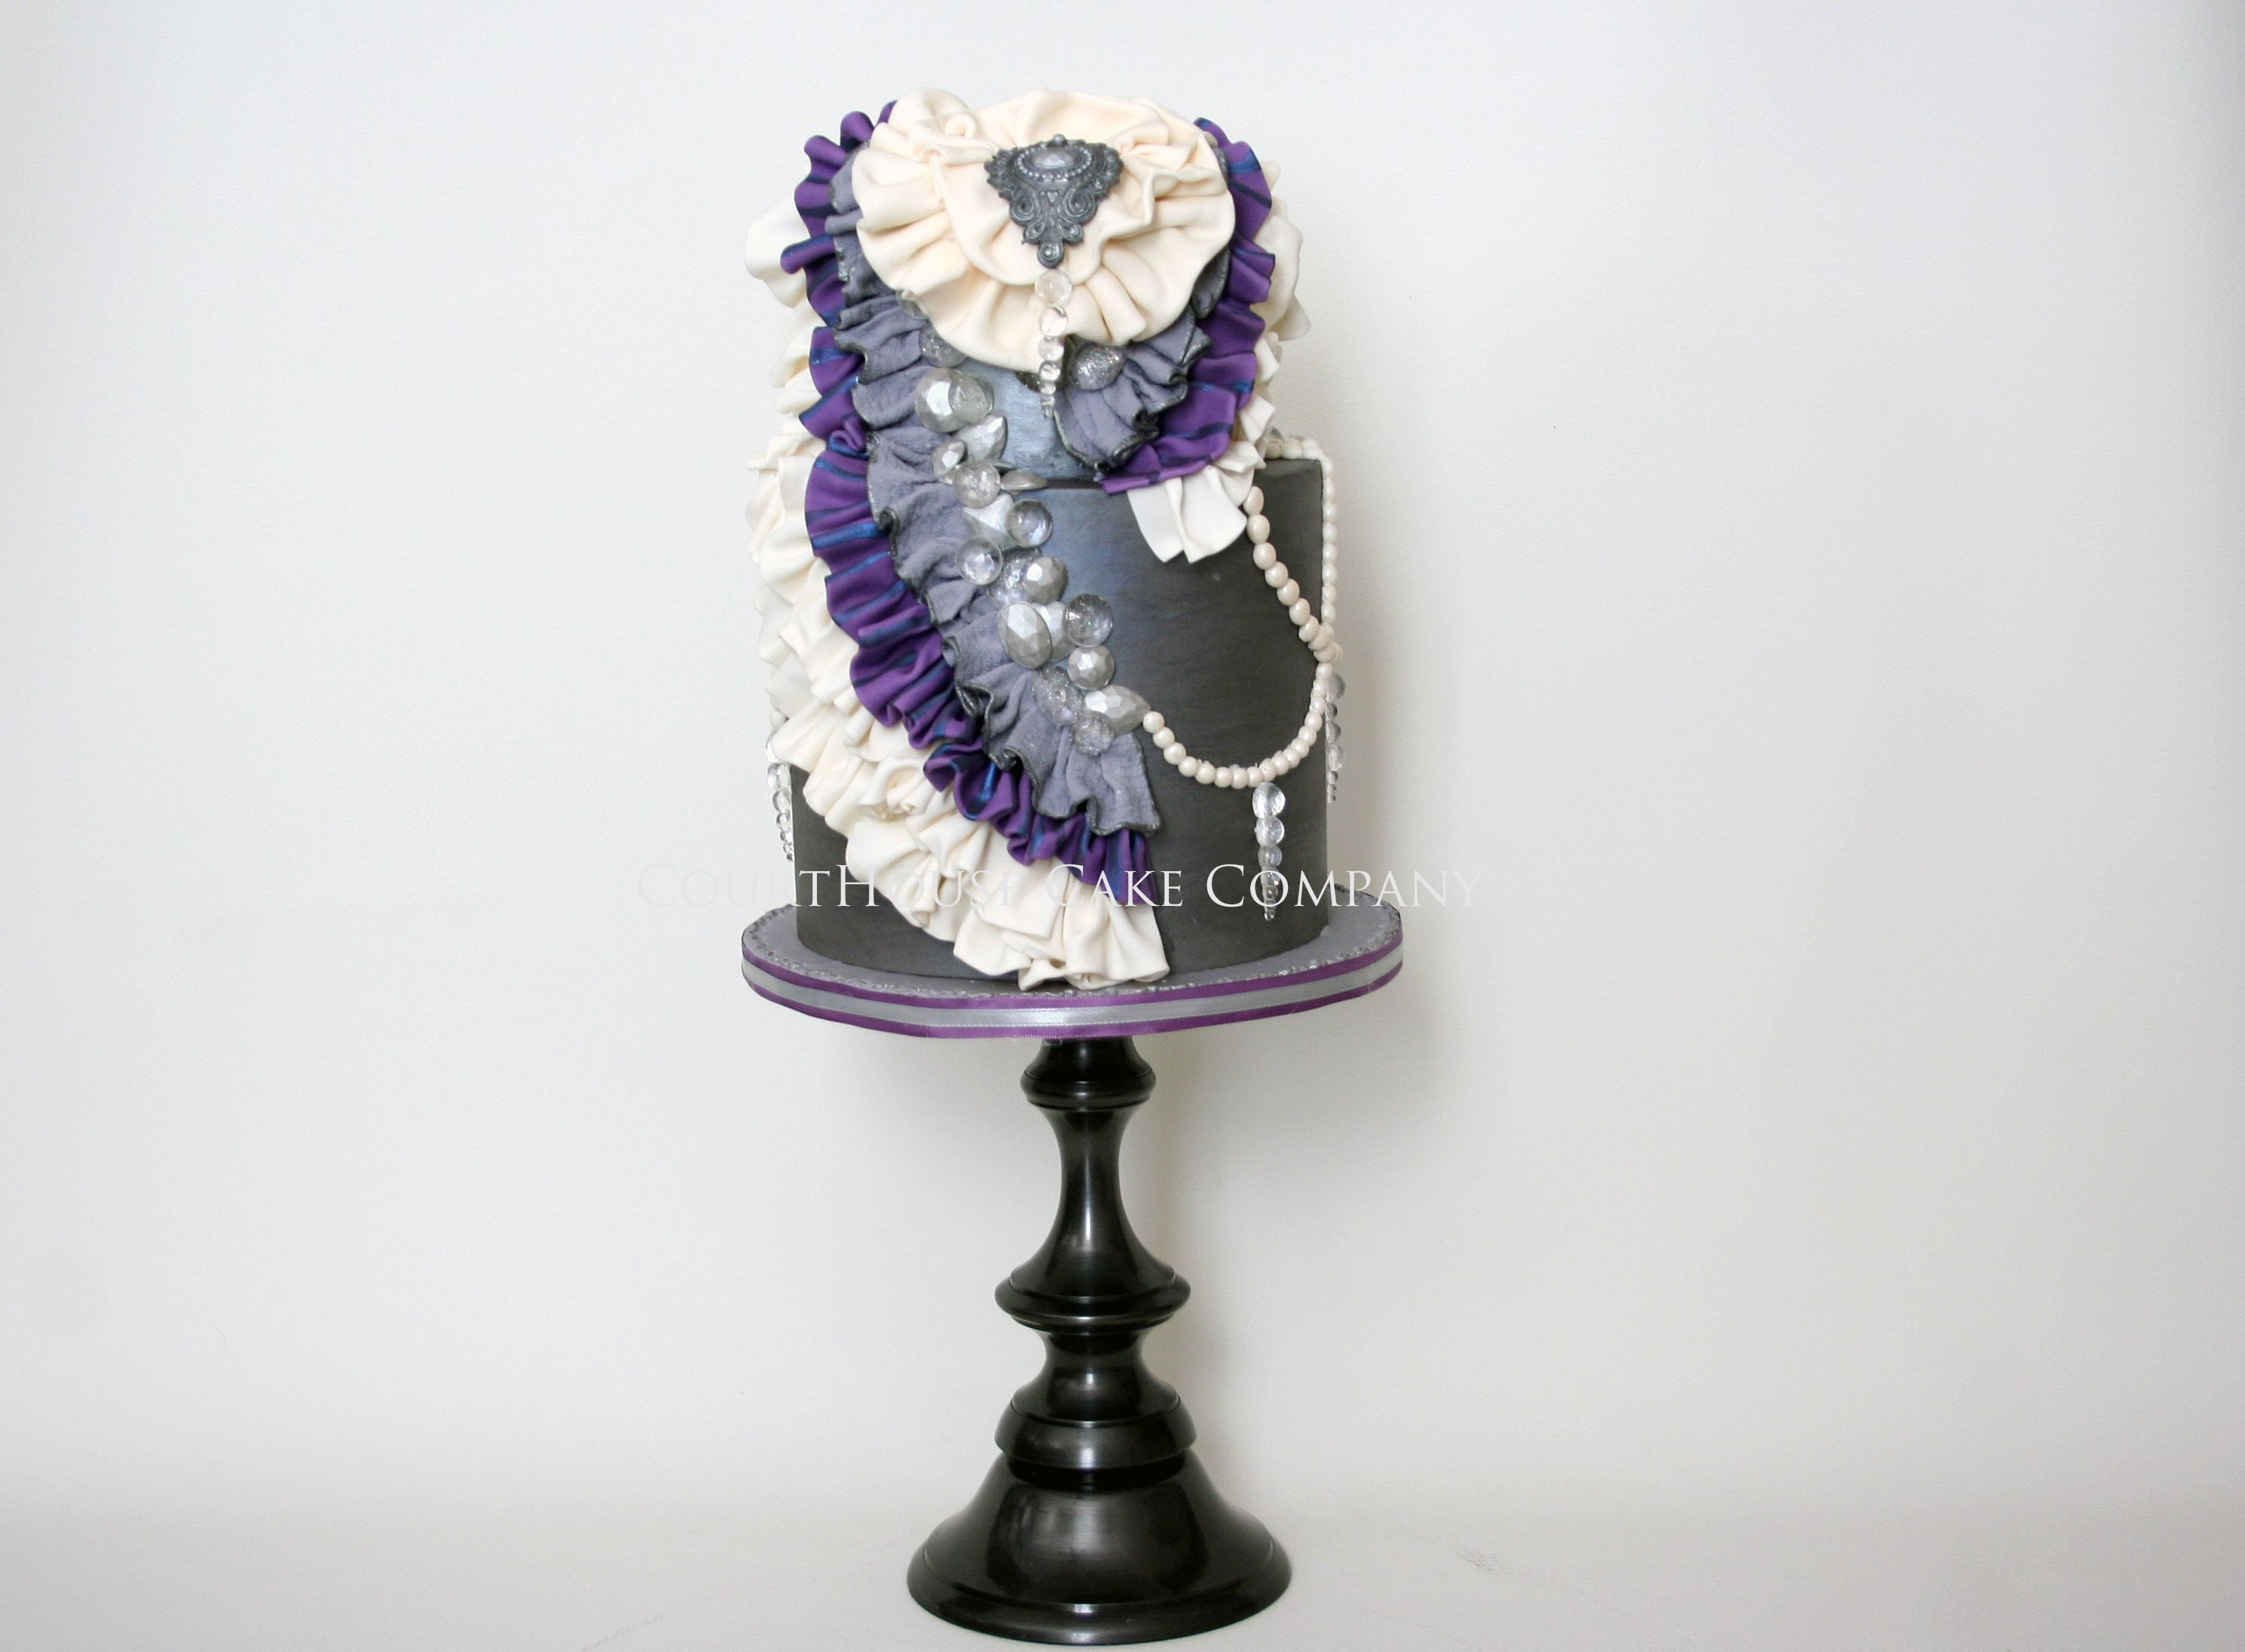 Vintage Ruffles and Gems - Metallic grey cake adorned in Pearls, sugar crystals and fabric inspired ruffles.